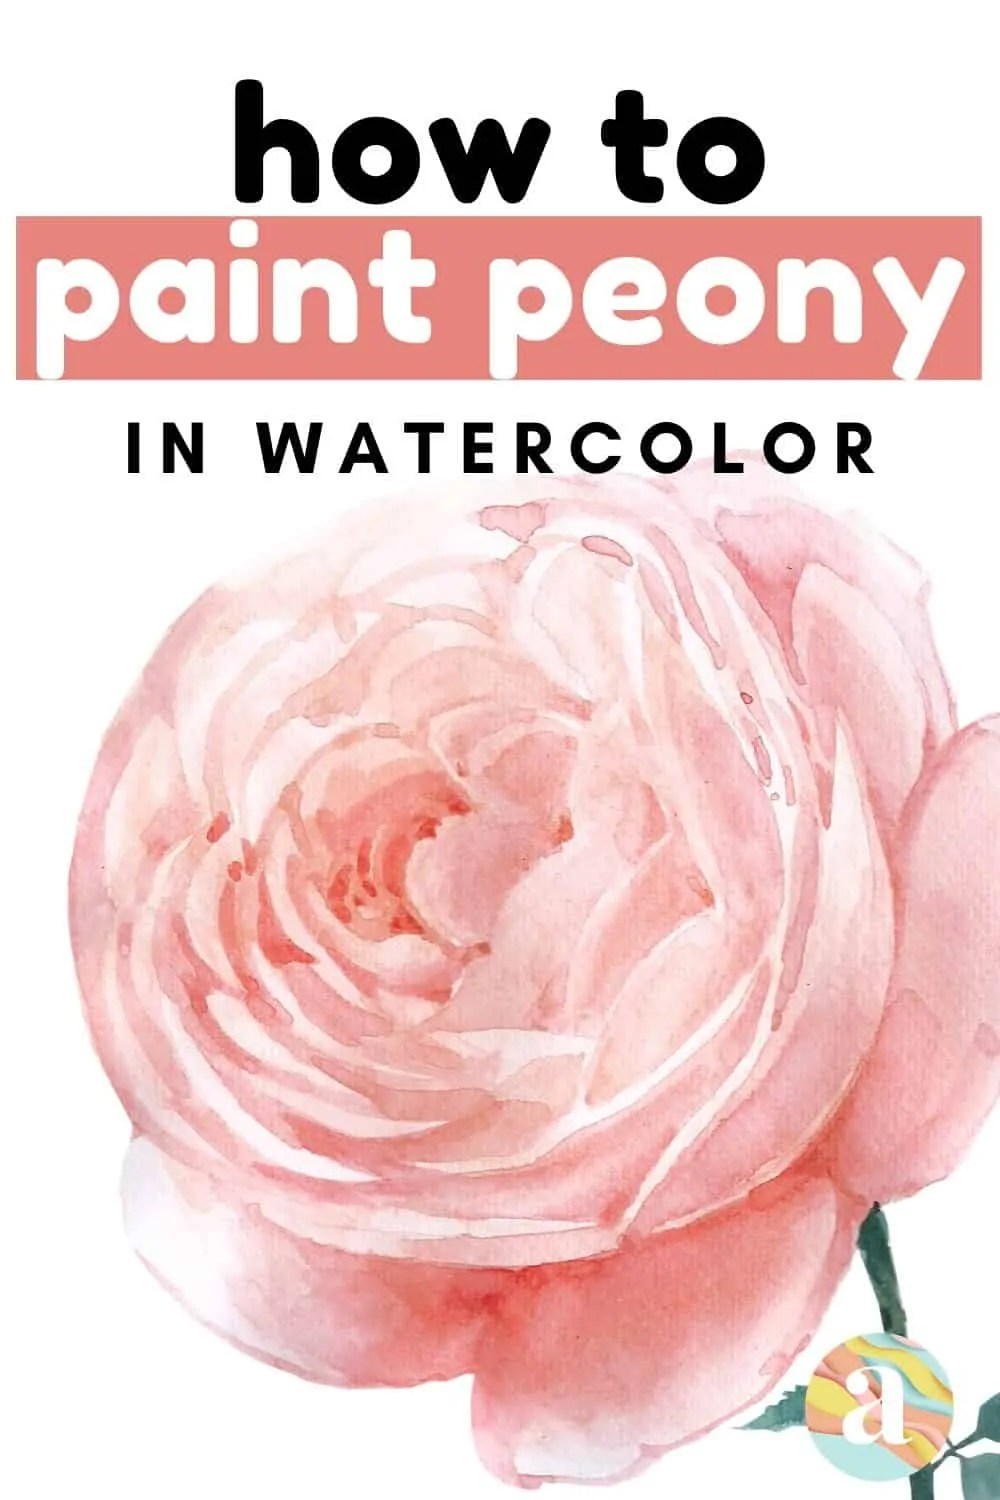 How to paint peony in watercolor